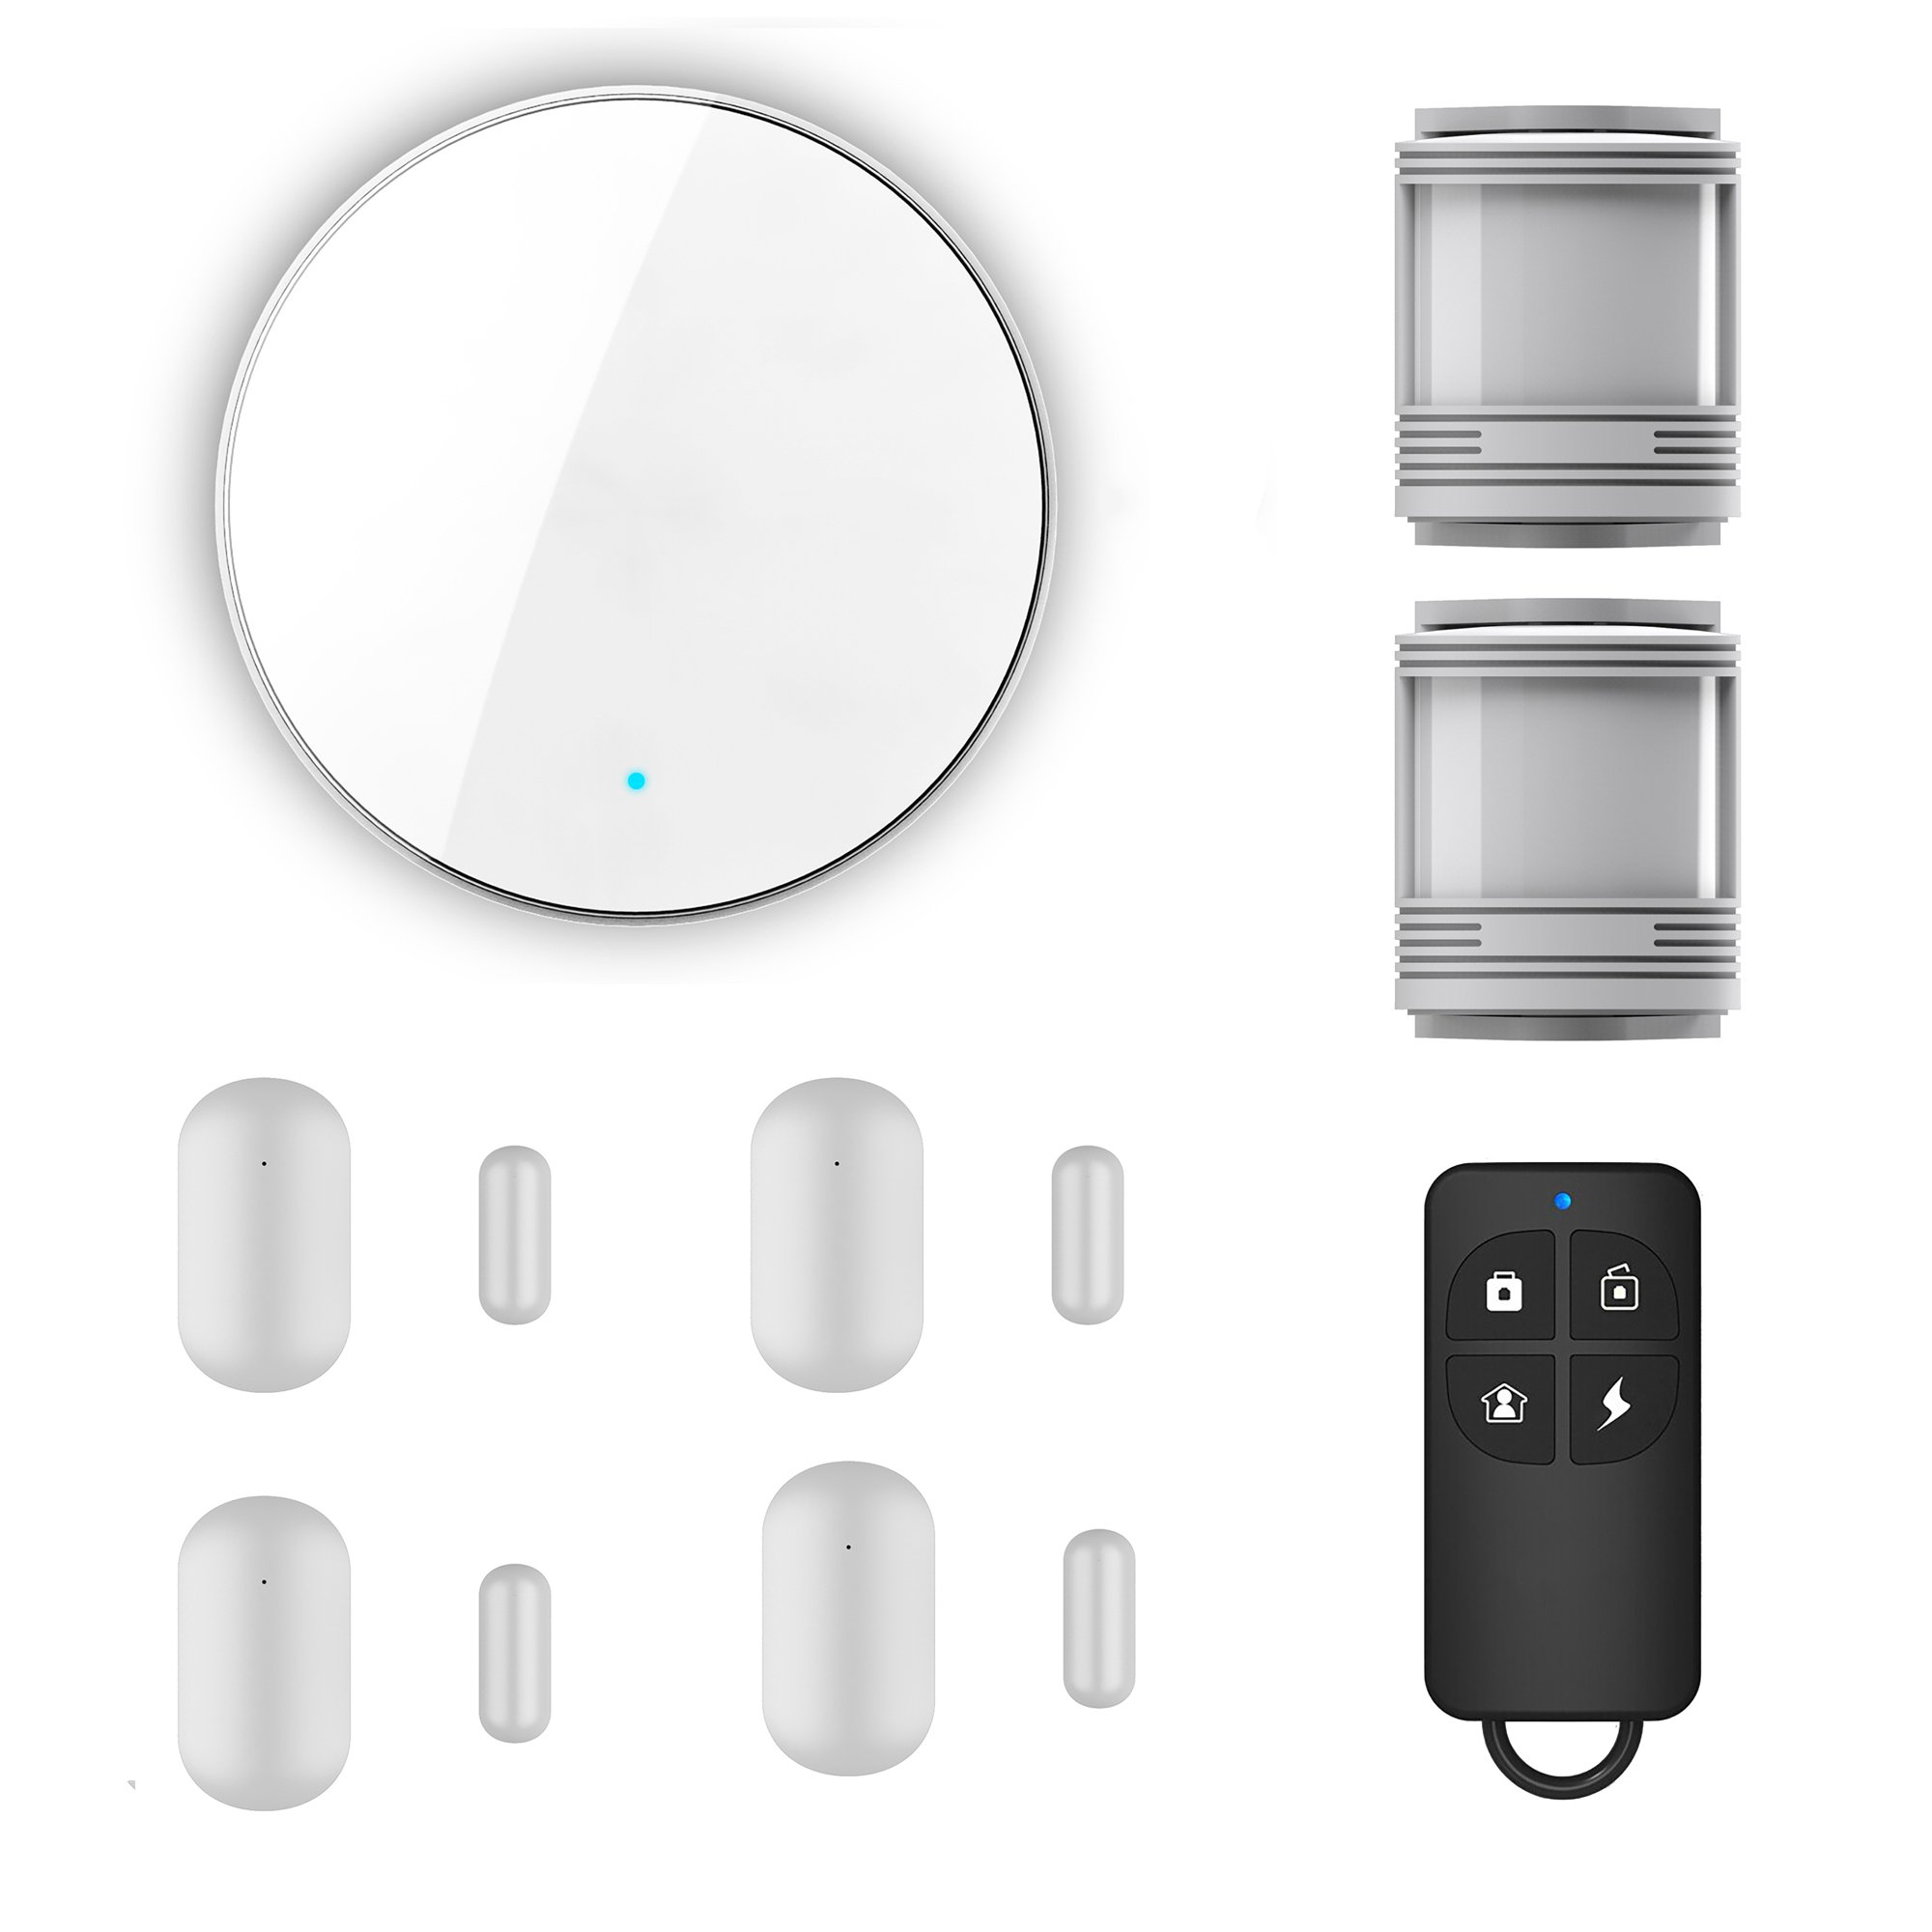 eFamily Smart All-In-One Complete Home Security System | PIR Motion Detection | Contact Sensor | iOS Android App | Alarm | Alexa Echo Voice Control | Wireless 2.4ghz WiFi | For Home Office Window Door